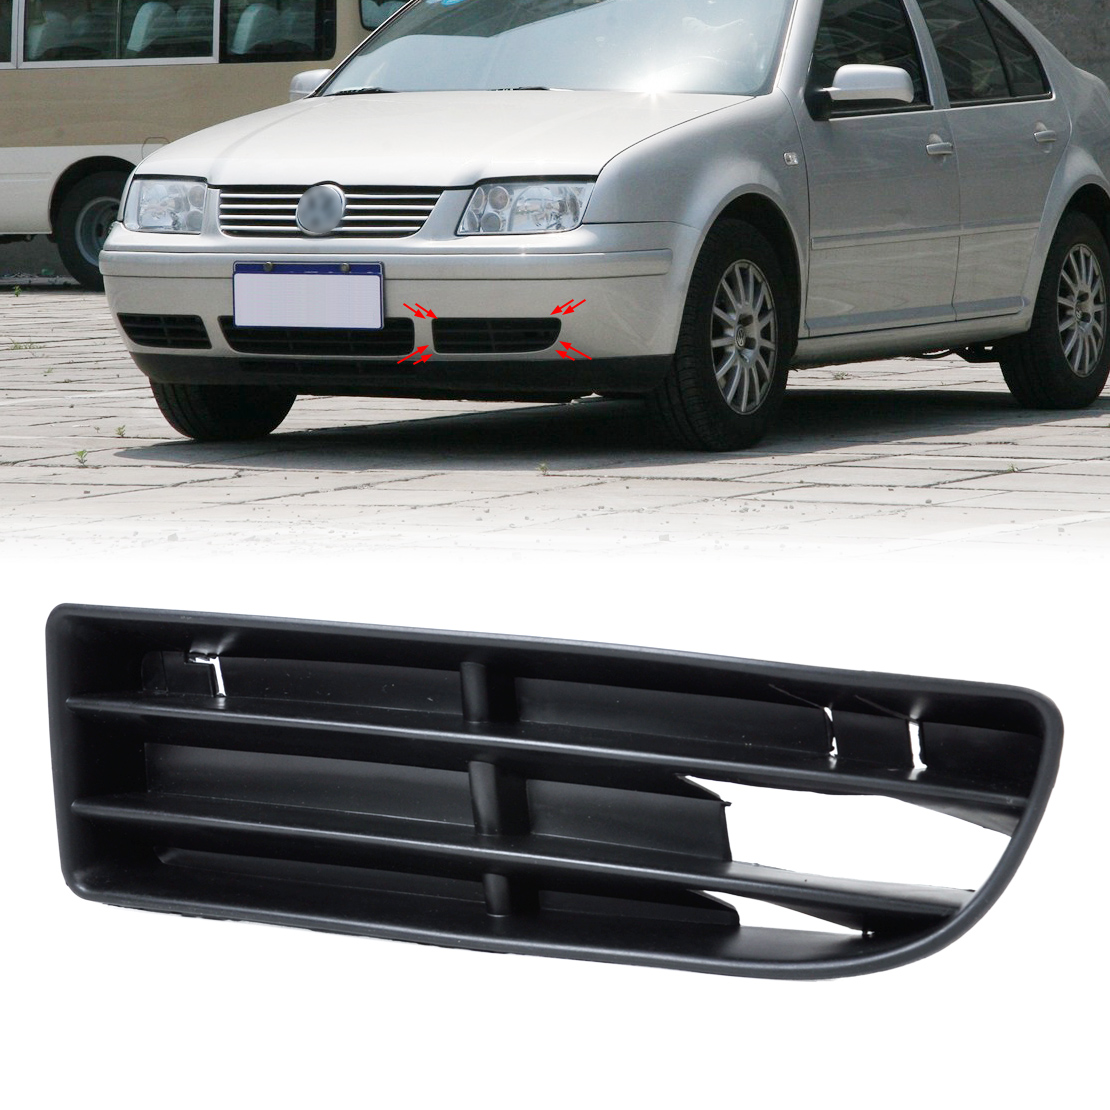 DWCX 1J5853665B Front Left Side Bumper Lower Grill Vent for VW Jetta Bora MK4 1999 2000 2001 2002 2003 2004 dwcx 1j5853665b 1j5853666c front lower grille bumper vent for volkswagen vw jetta bora mk4 1999 2000 2001 2002 2003 2004